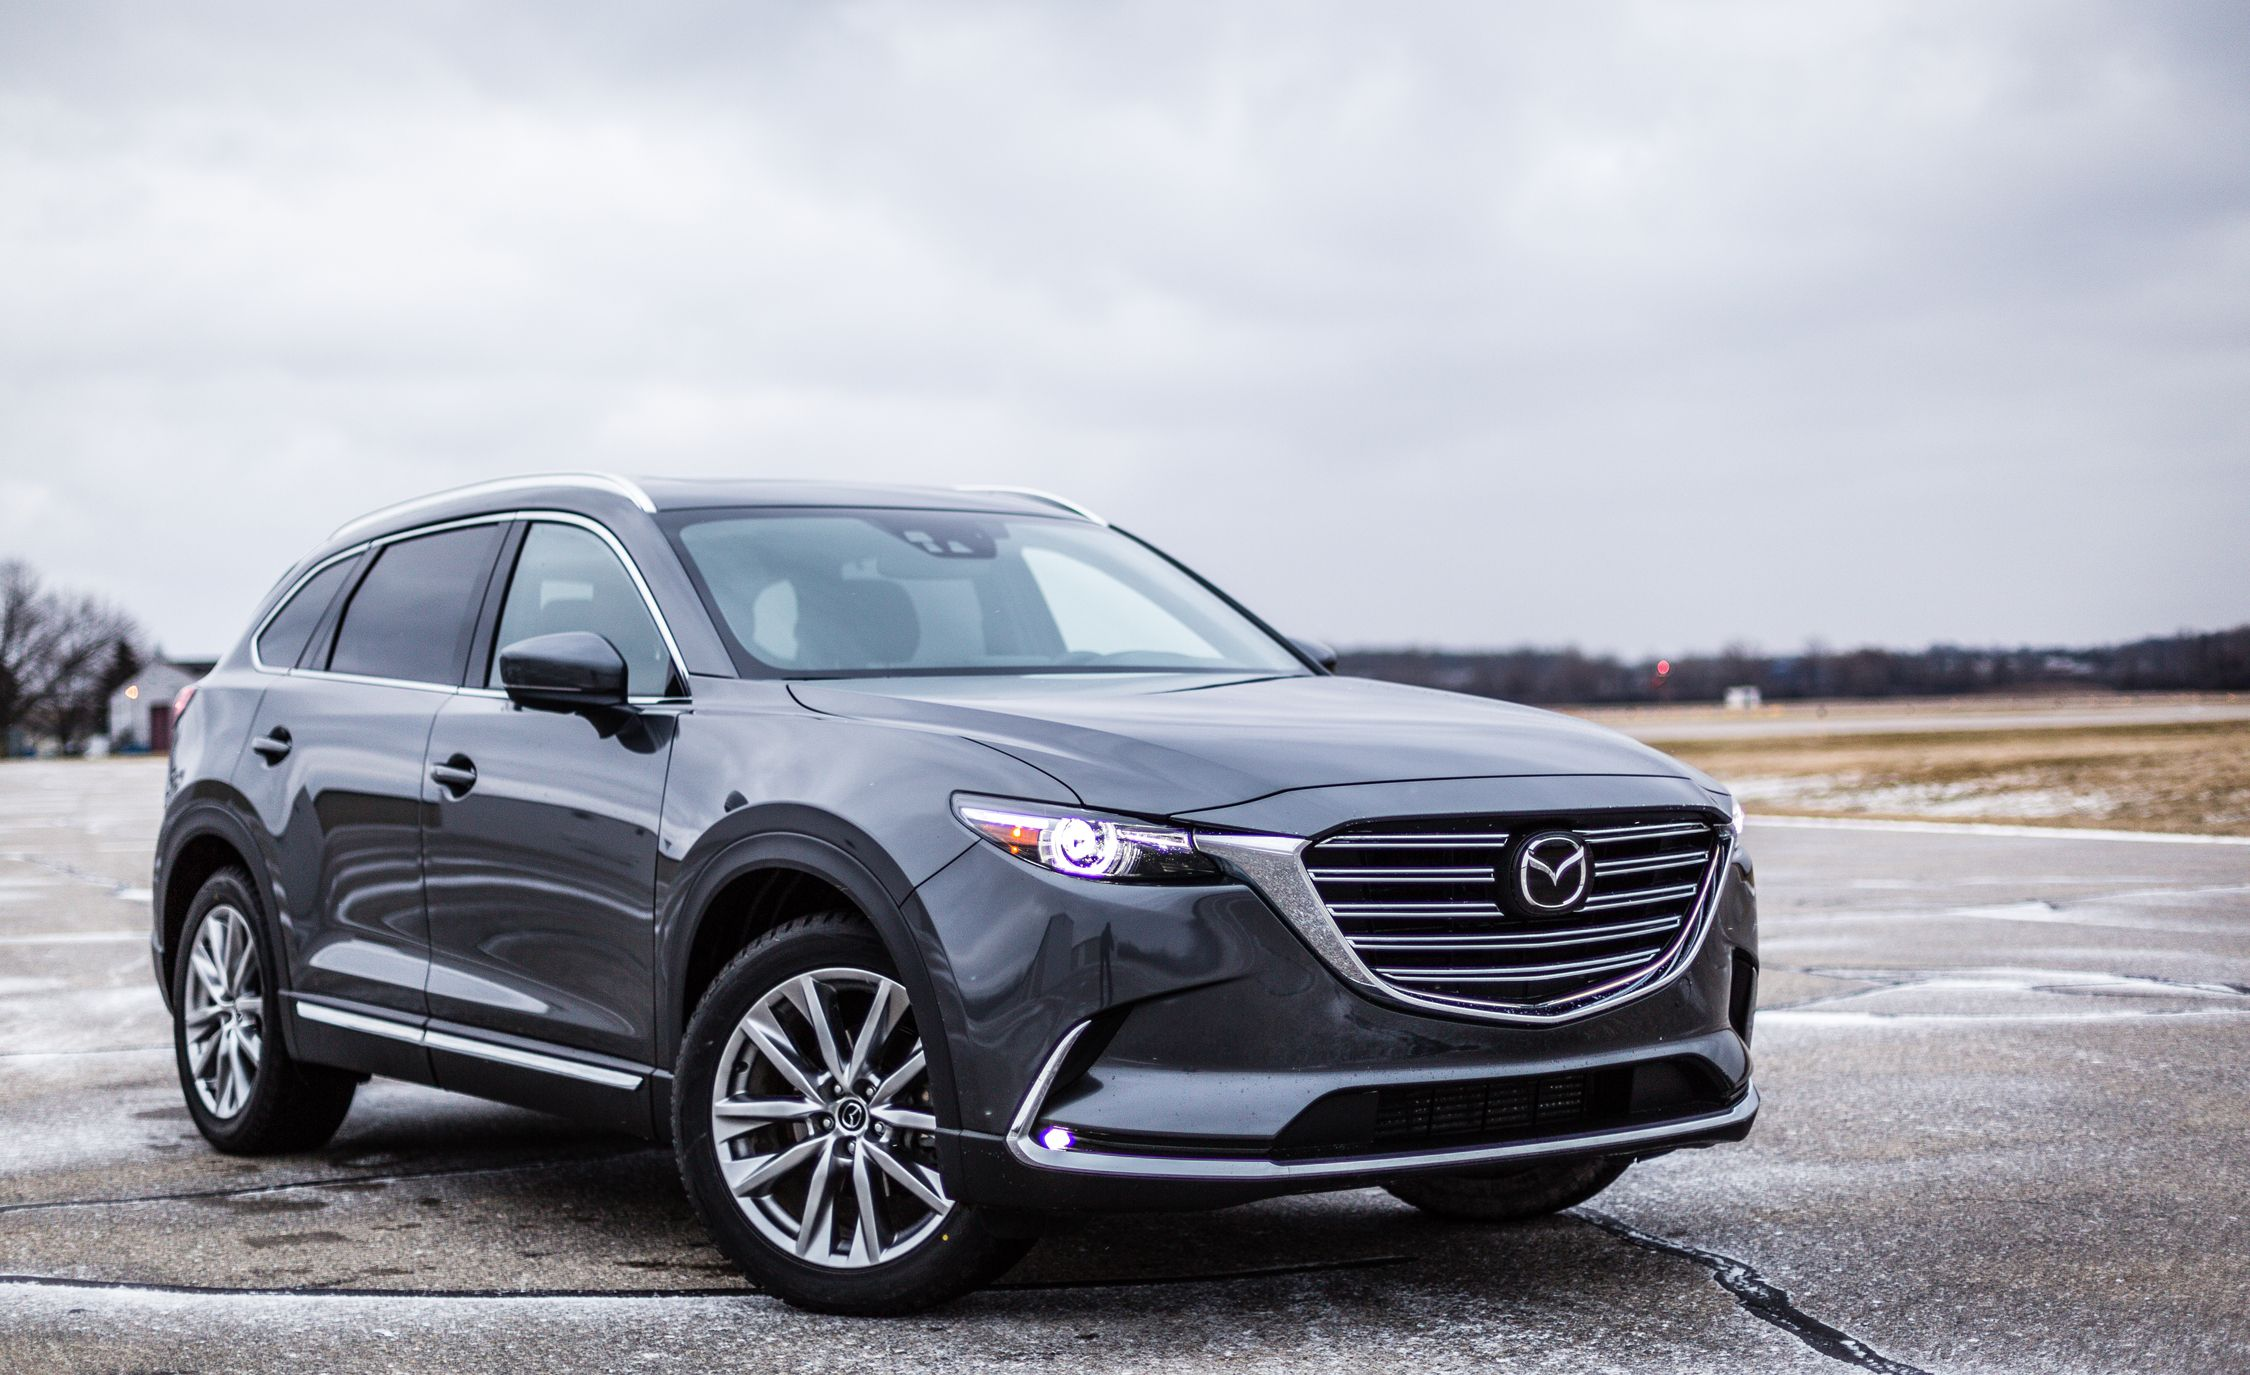 2018 7 Seater Cars >> 2017 Mazda CX-9 | In-Depth Model Review | Car and Driver